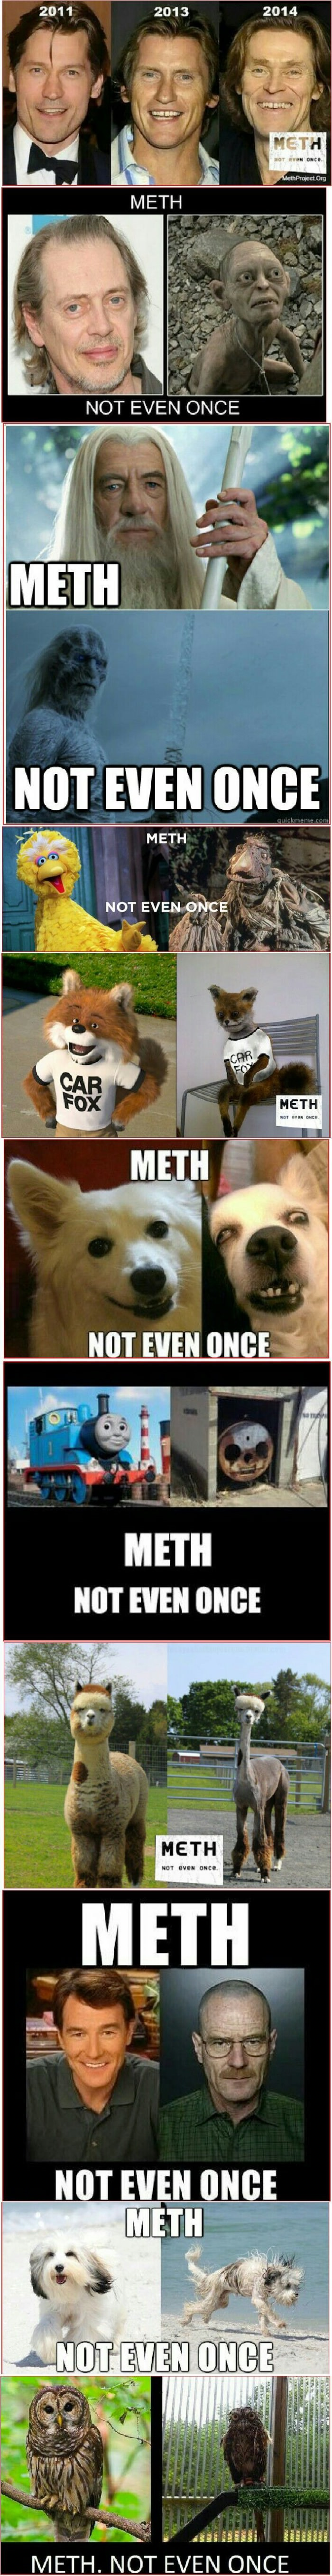 meth-not-even-once-compilation